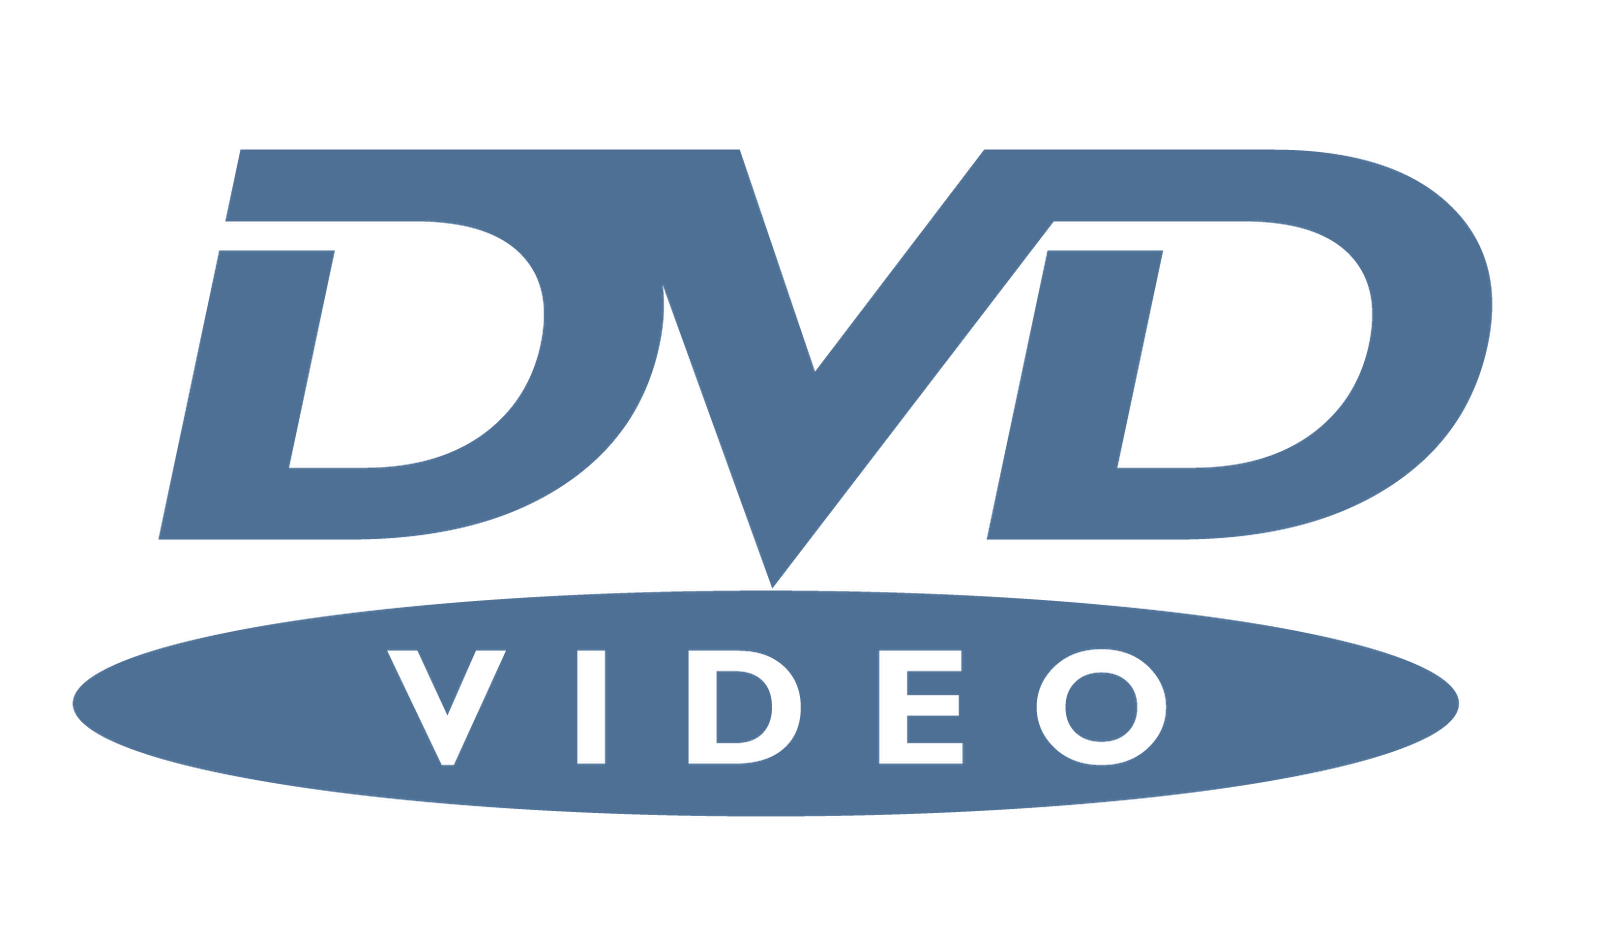 Dvd Logo Png, png collections at sccpre.cat.